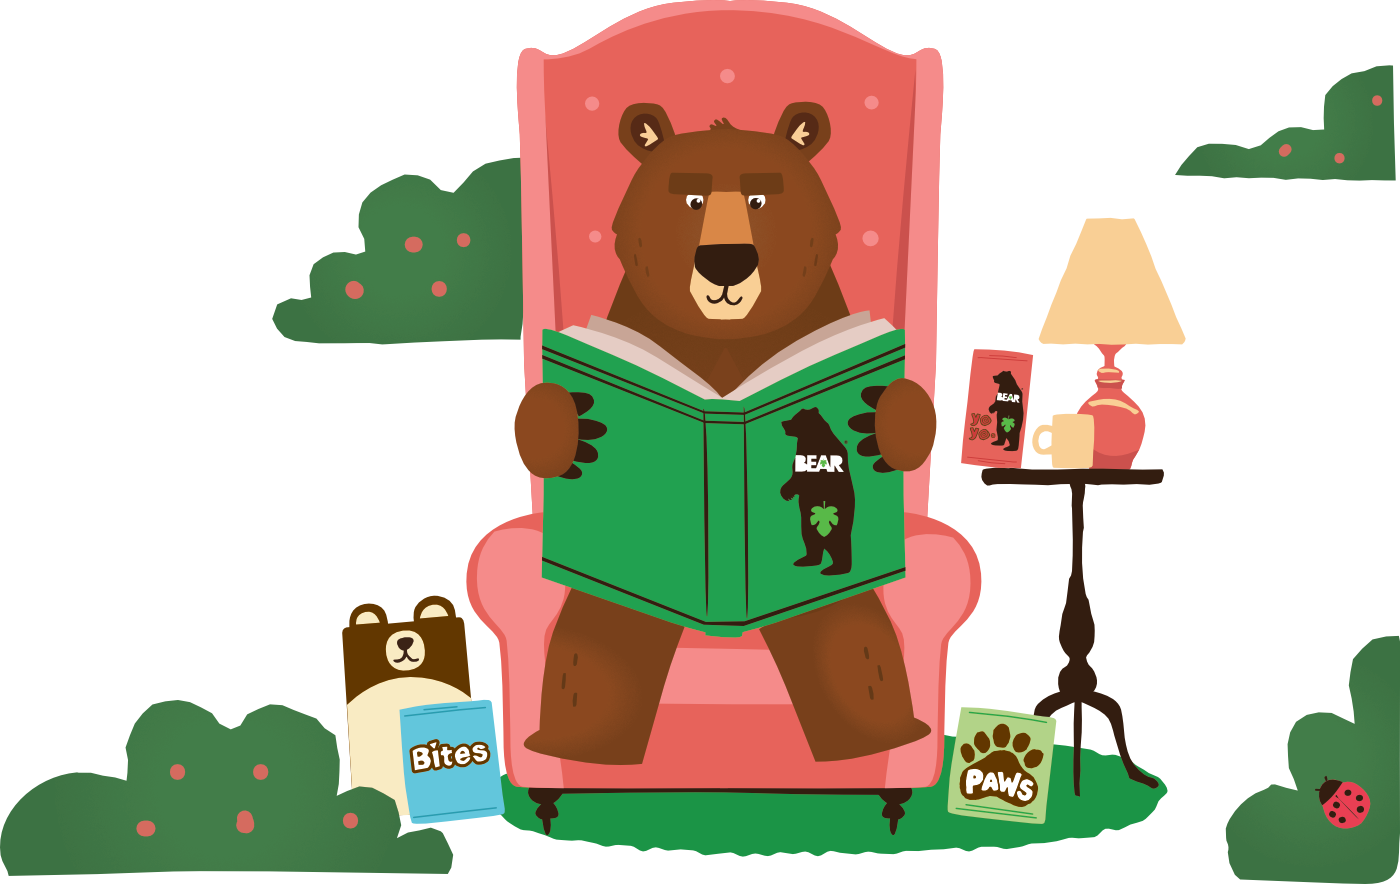 Discover the story of BEAR snacks